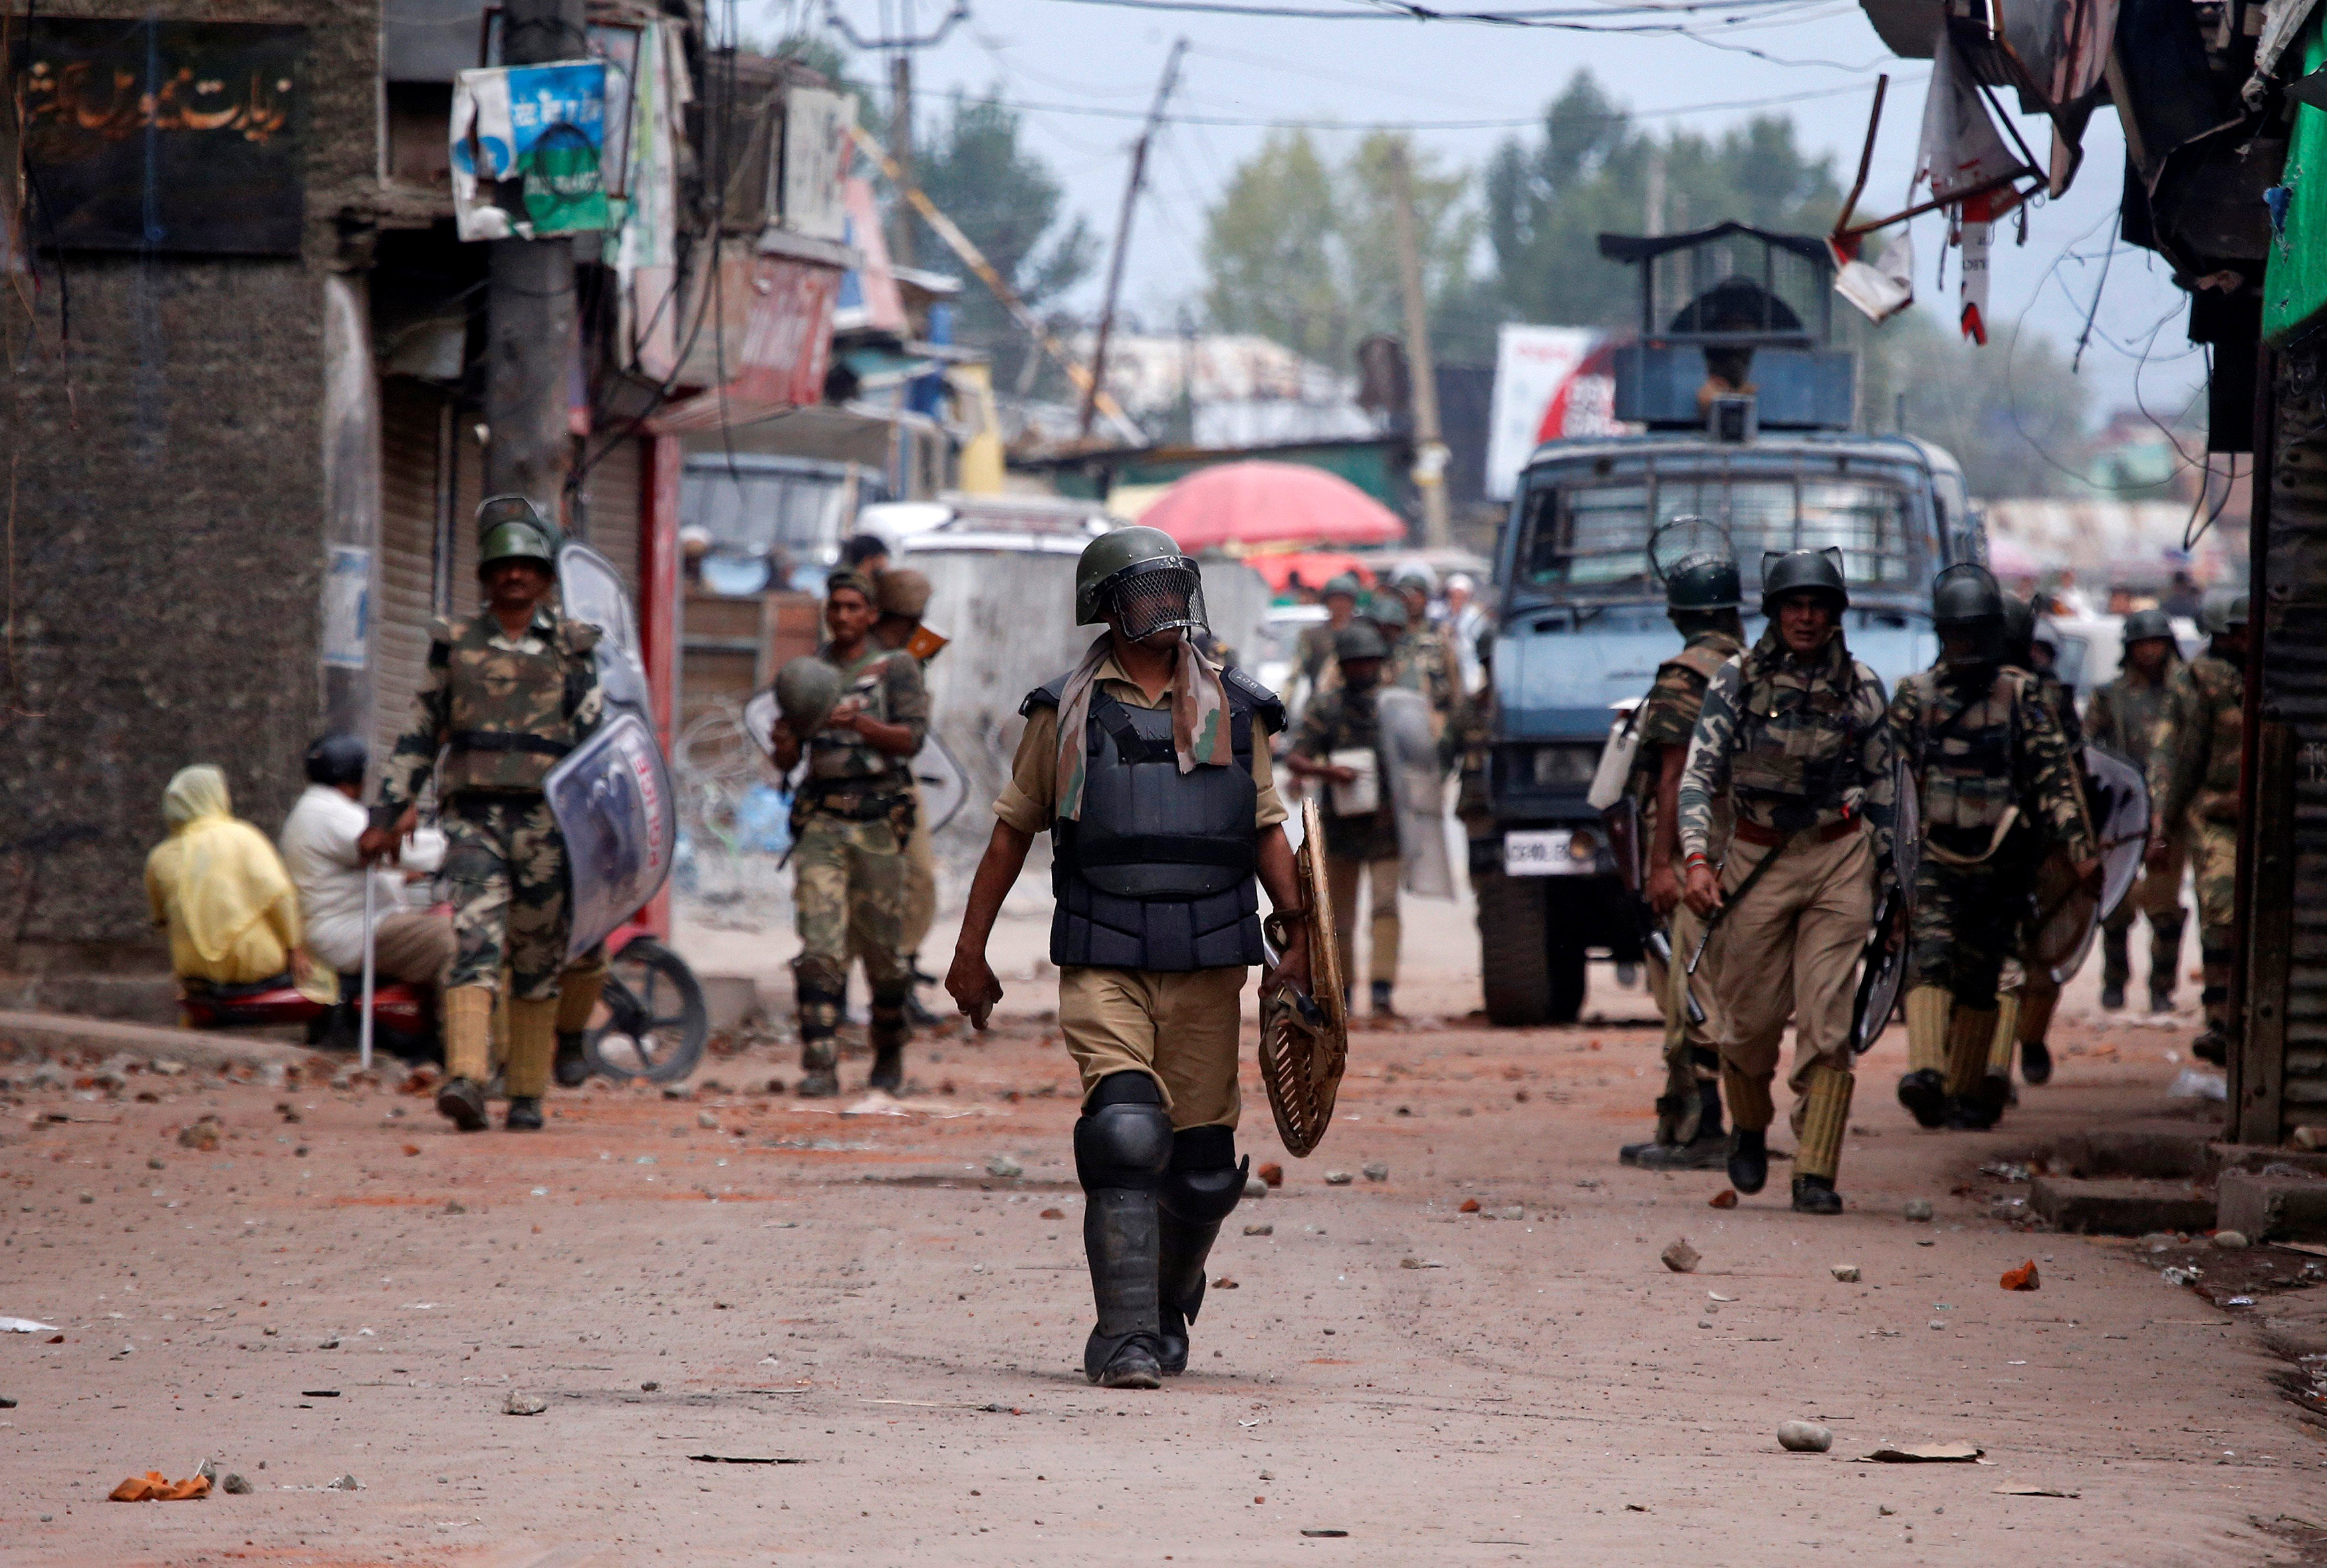 Youth killed in Jammu and Kashmir, toll rises to 71